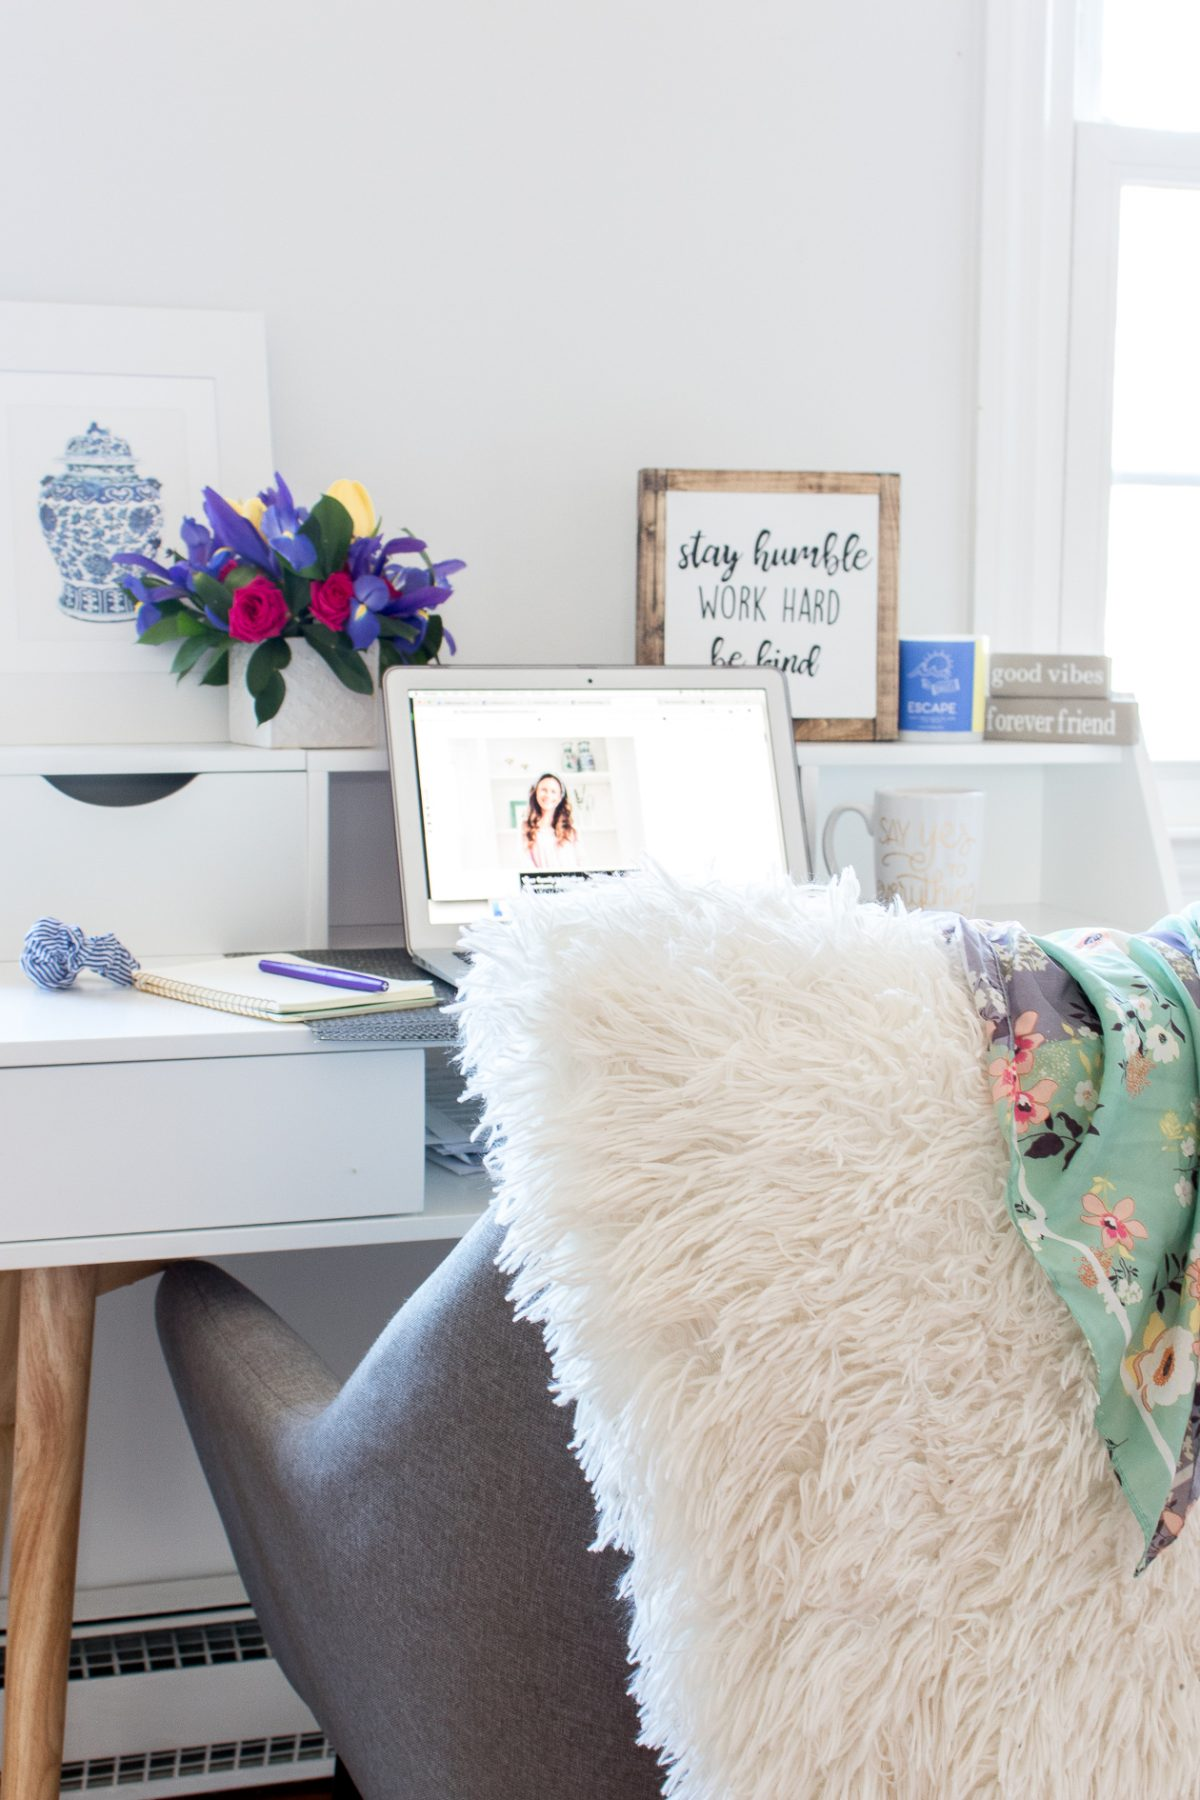 White desk with fresh flowers on the desk in background